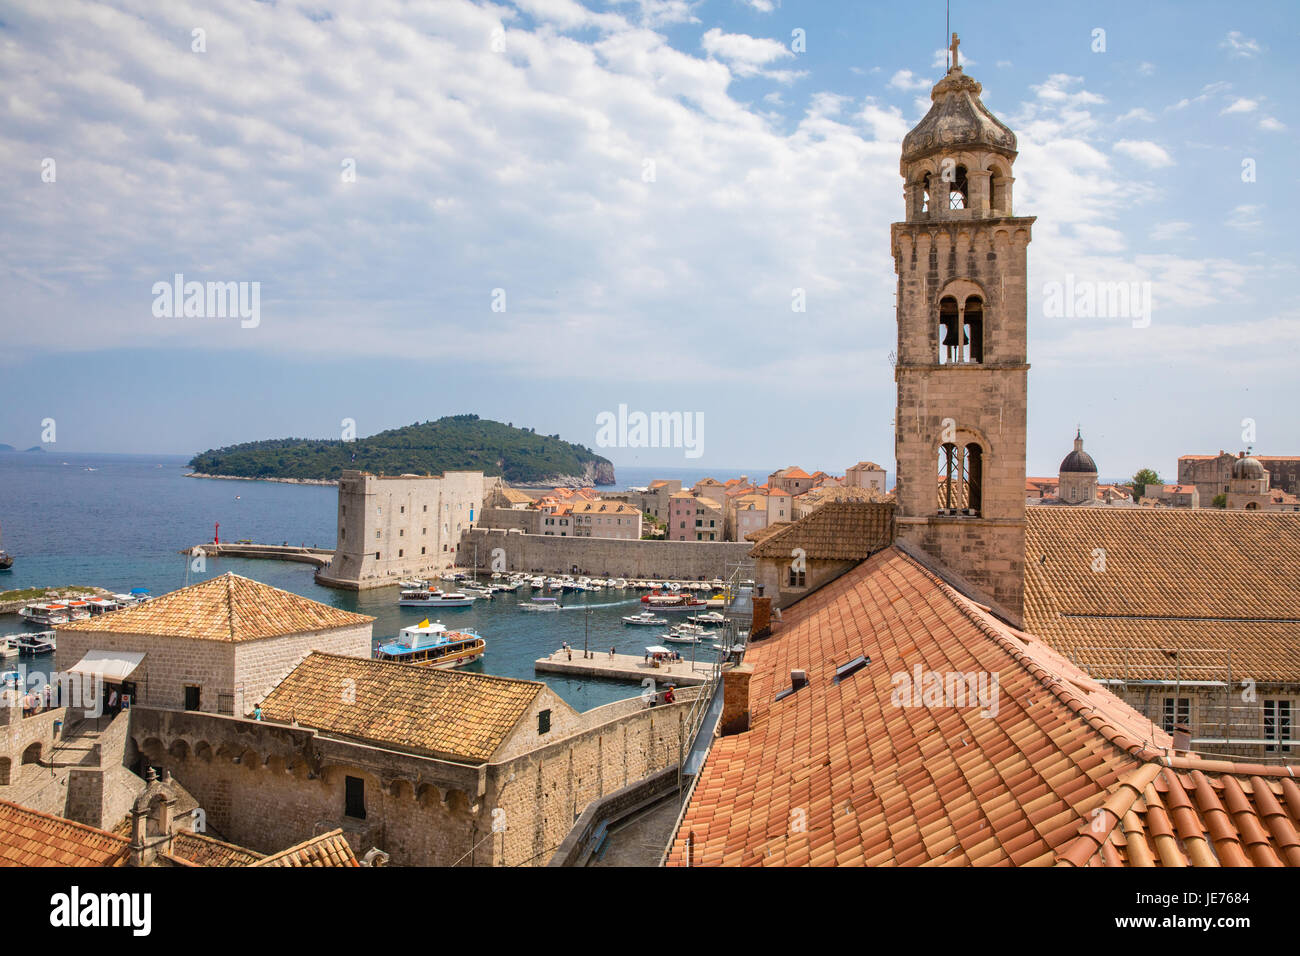 Bell tower of the Dominican monastery and museum overlooking the medieval city of Dubrovnik in Croatia - Stock Image